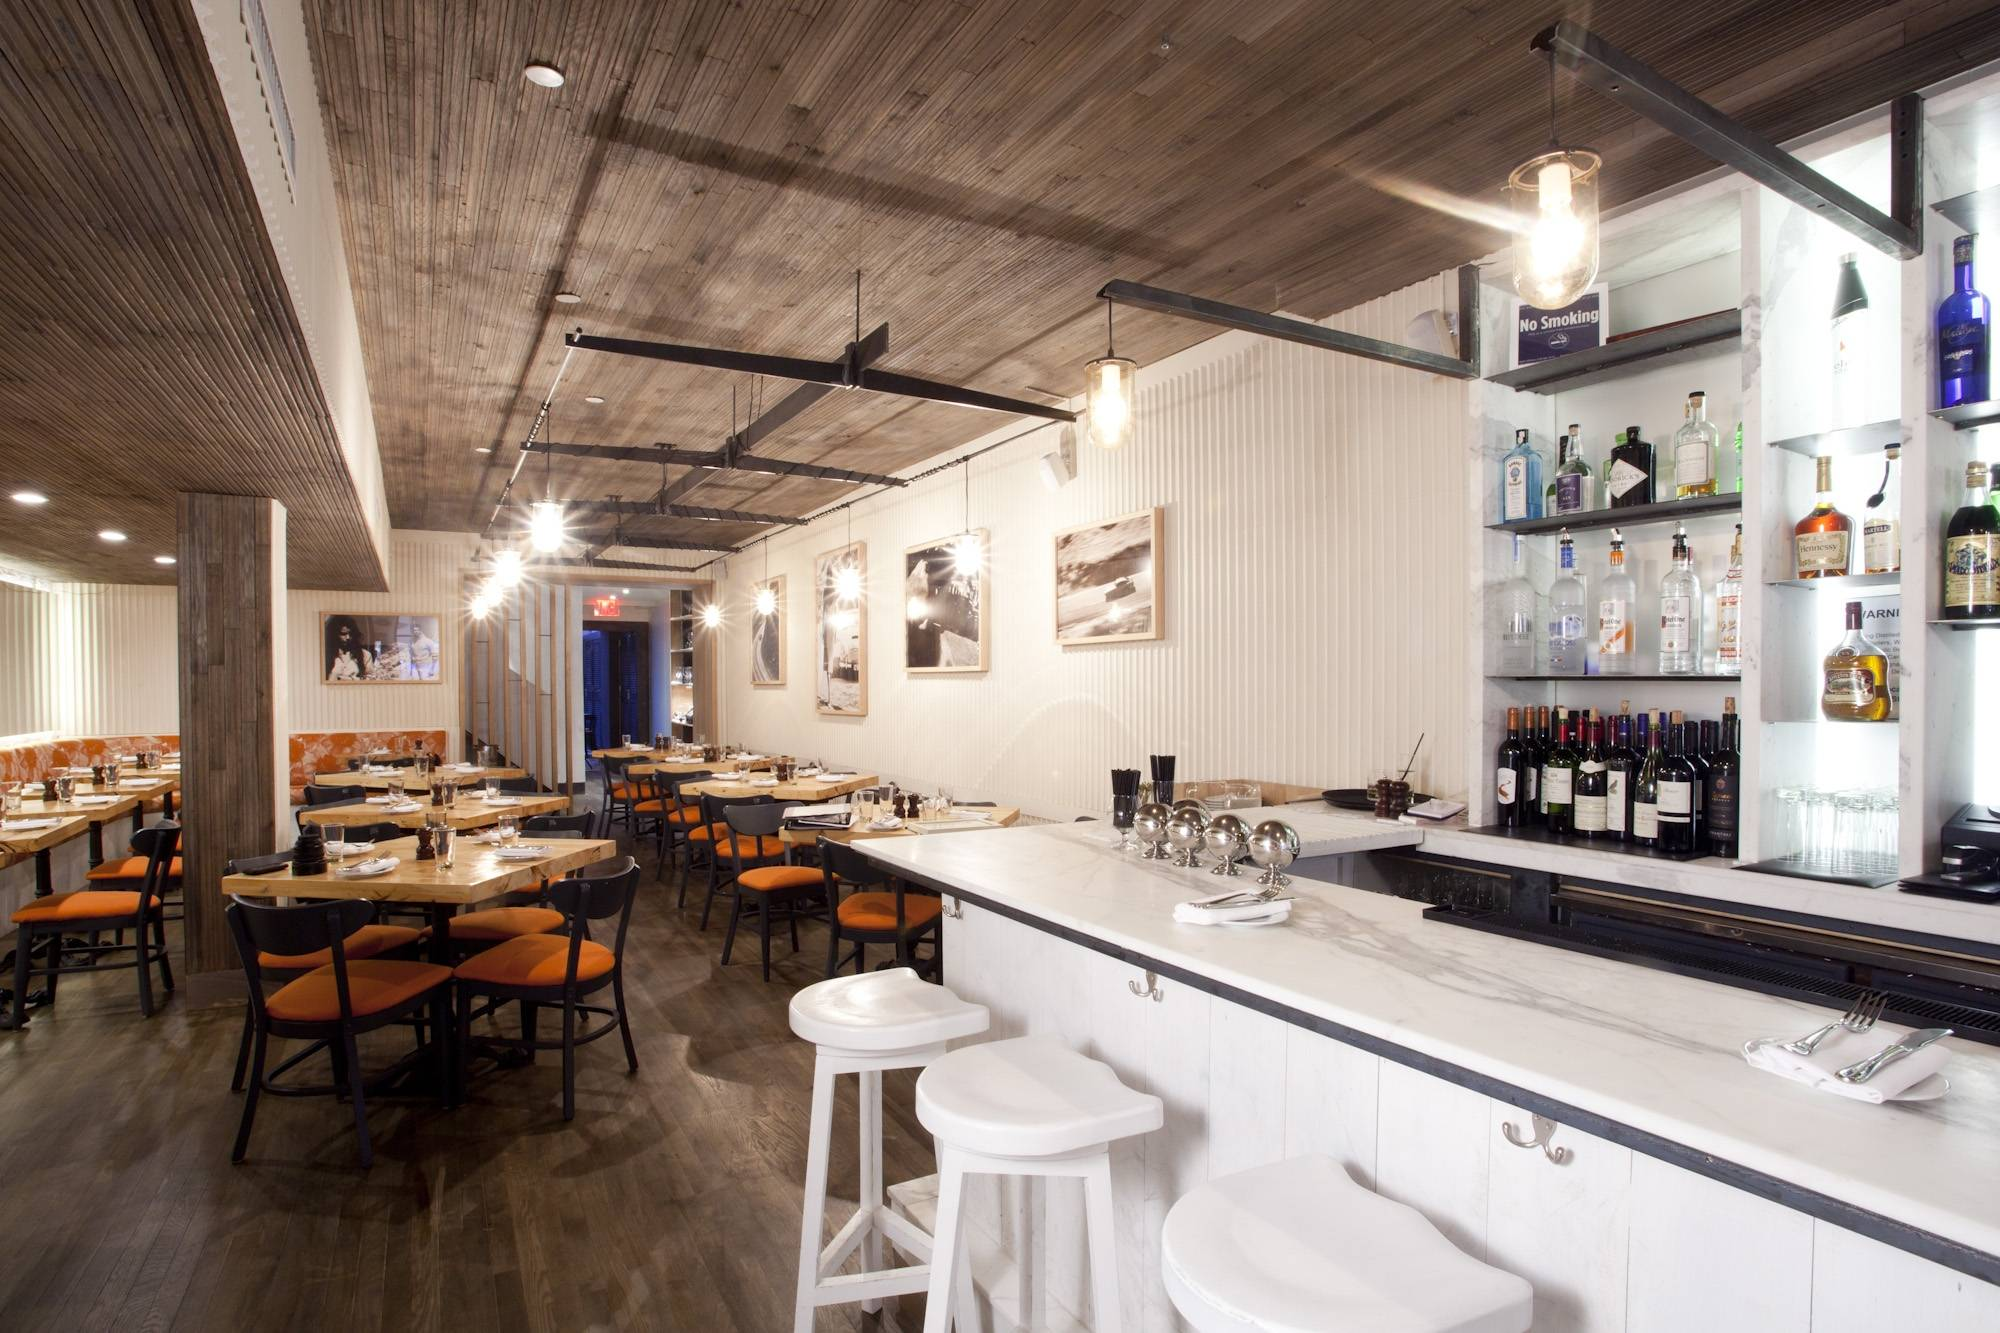 Amali Restaurant fers Up Sustainable Mediterranean Fare on the Upper East Side Haute Living